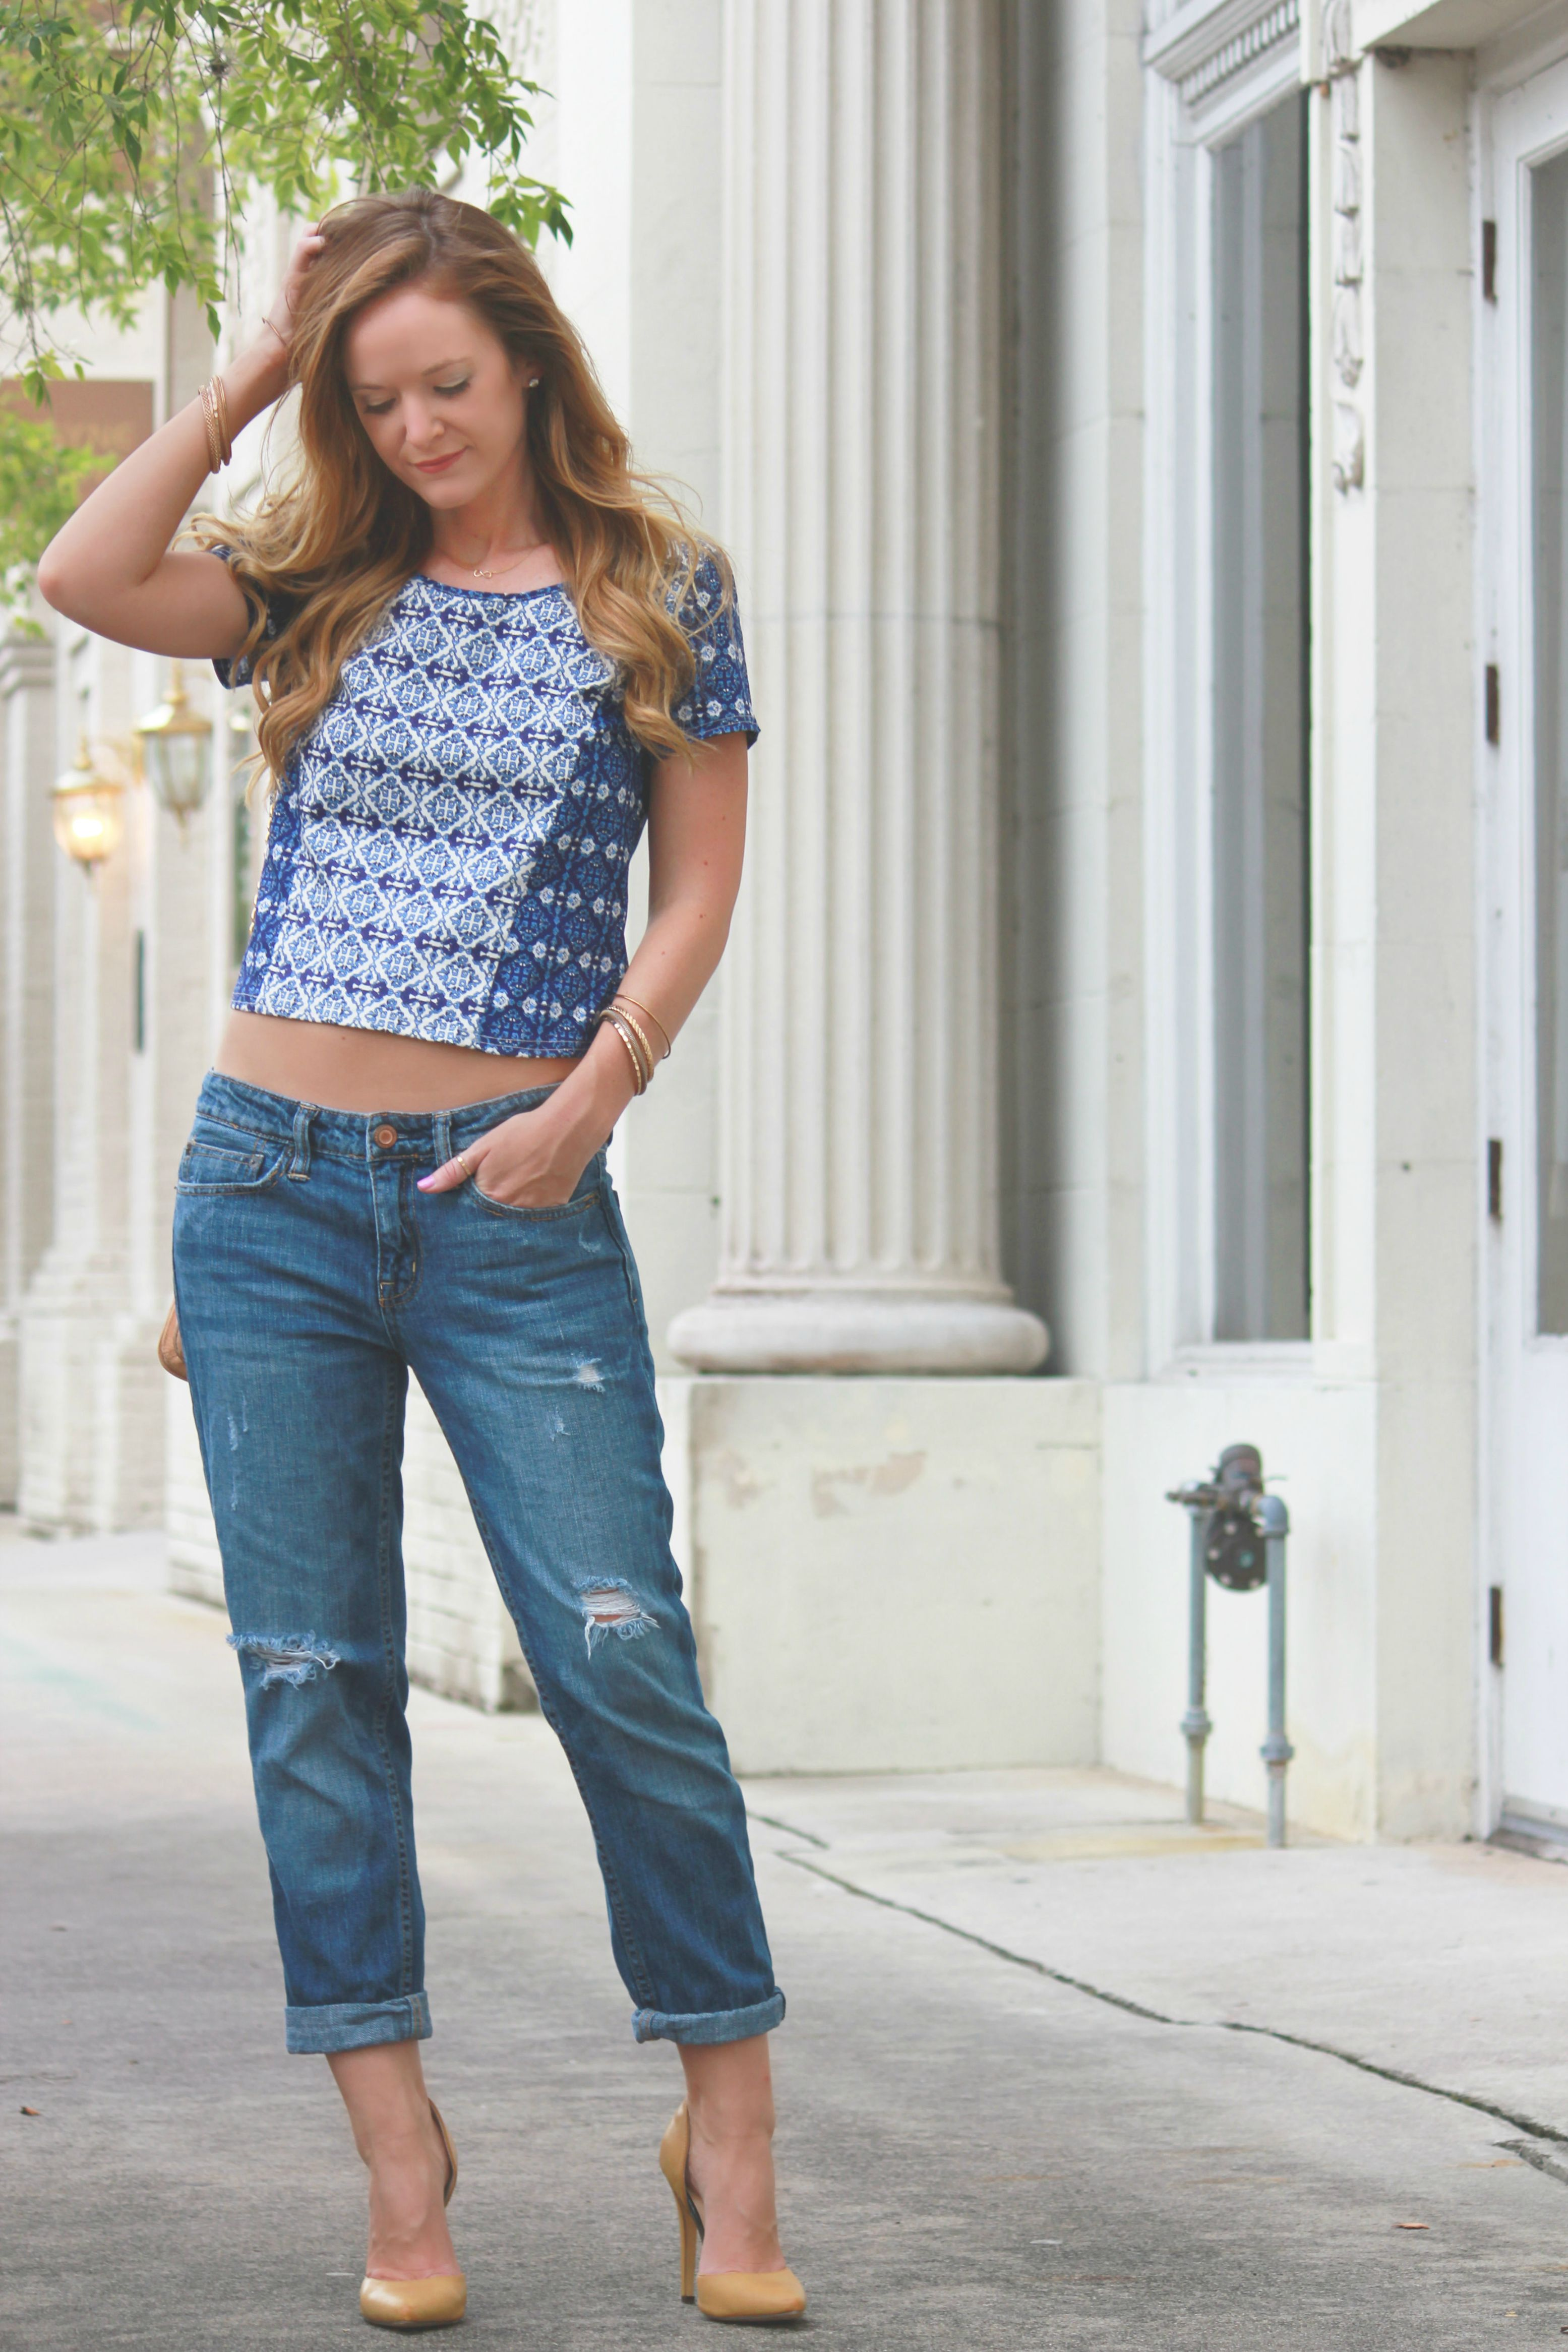 gianni bini blouse, blue and white crop top, american eagle jeans, american eagle boyfriend jeans, badgley mishcka crossbody, nude heels